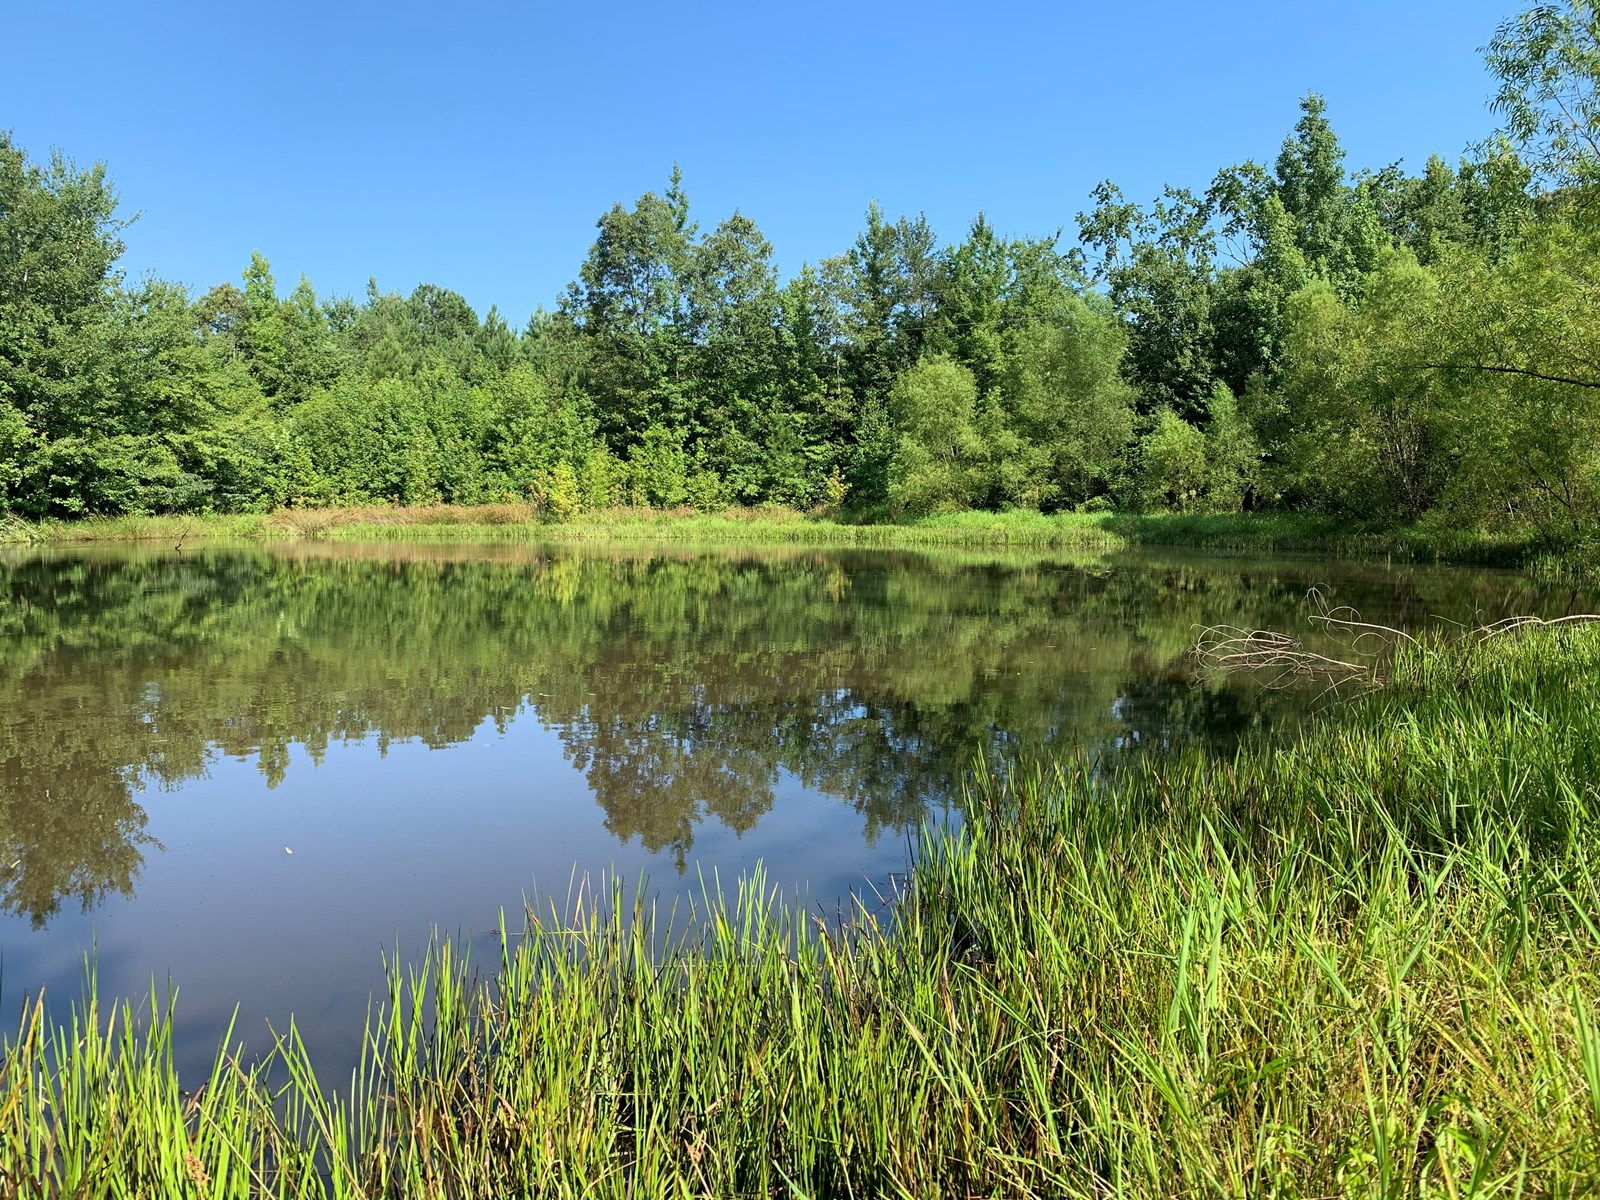 Land for Sell in Tennessee with ponds, cabin site, hunting